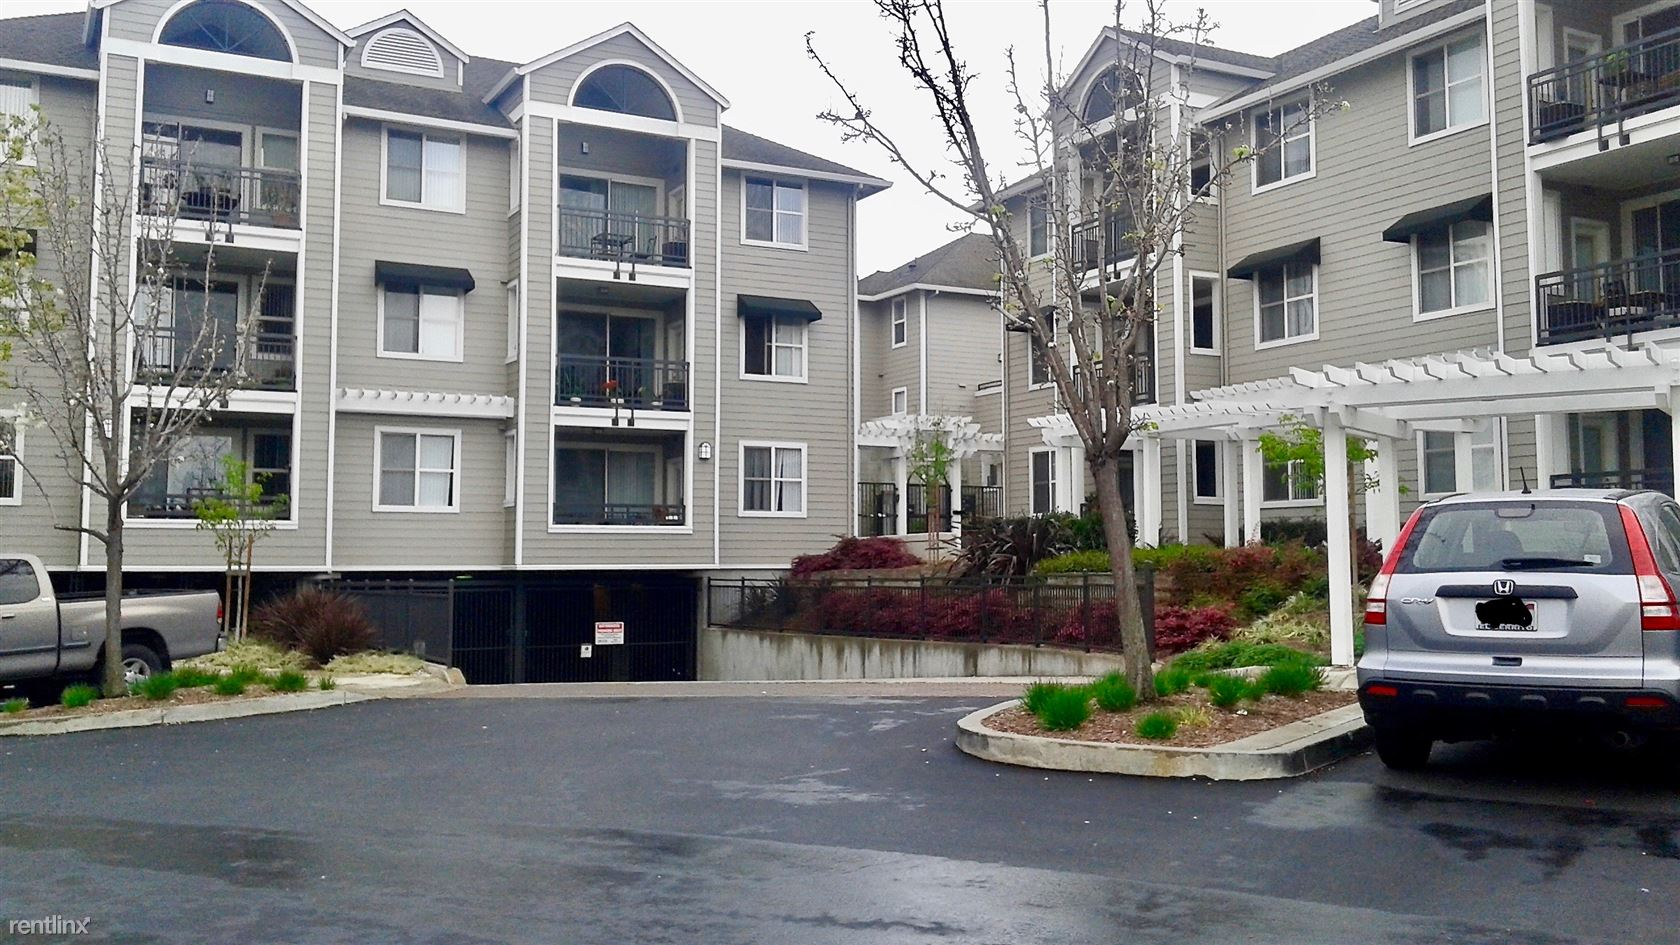 20 Best Apartments In East Palo Alto, CA (with pictures)!